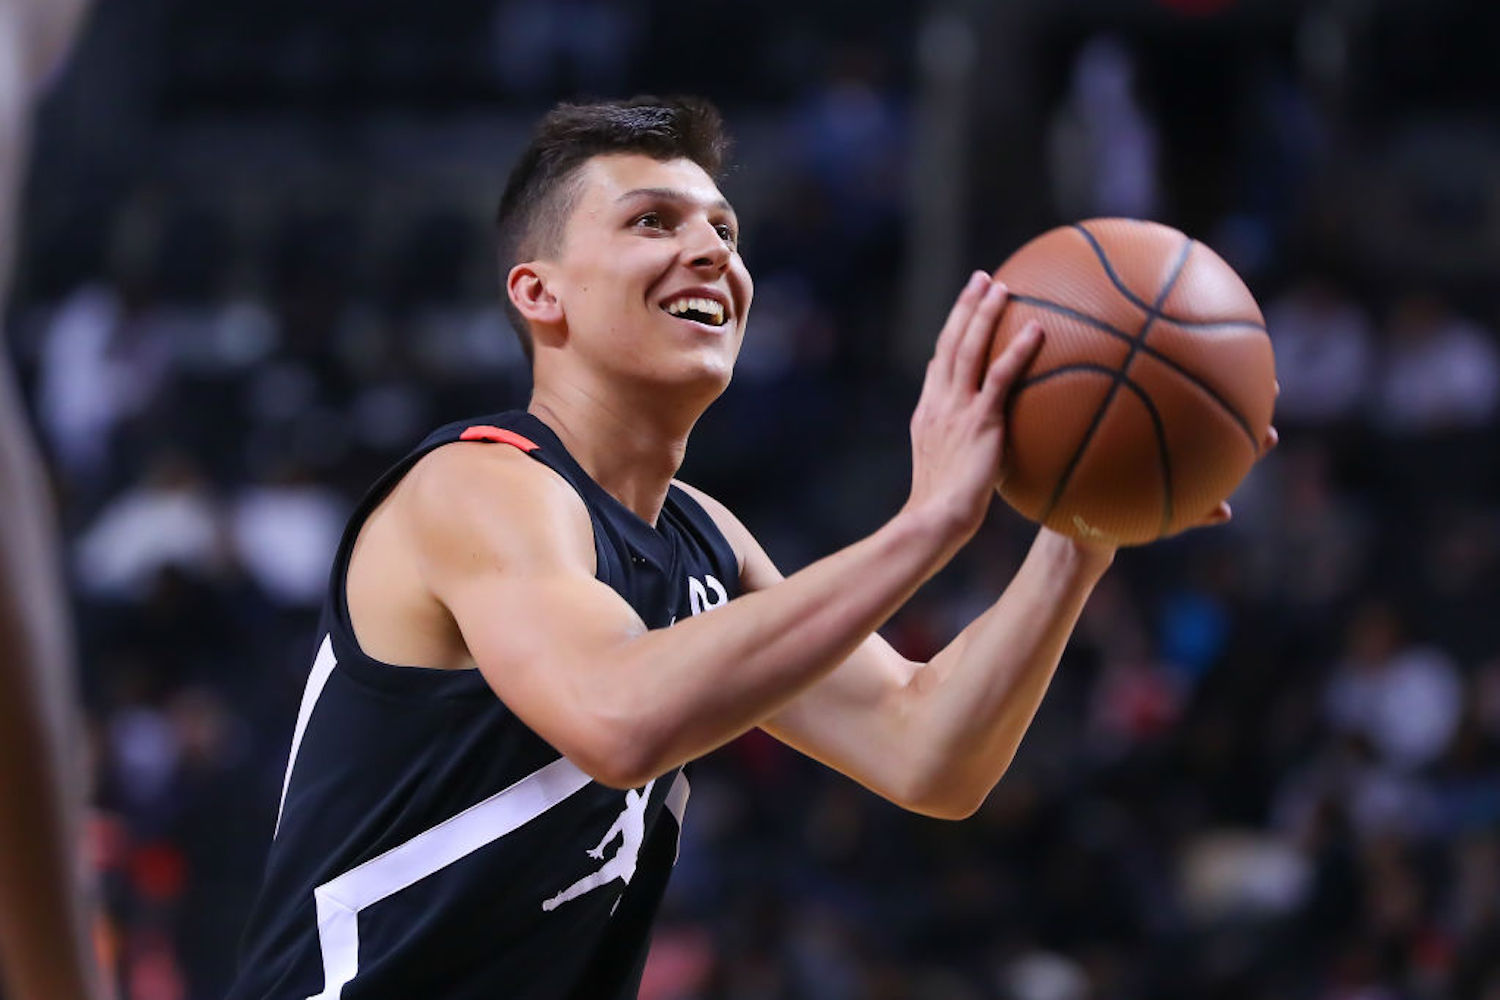 Zion Williamson was the top recruit in the 2018 high school class, but he saw great things in another top player in the group — Tyler Herro.